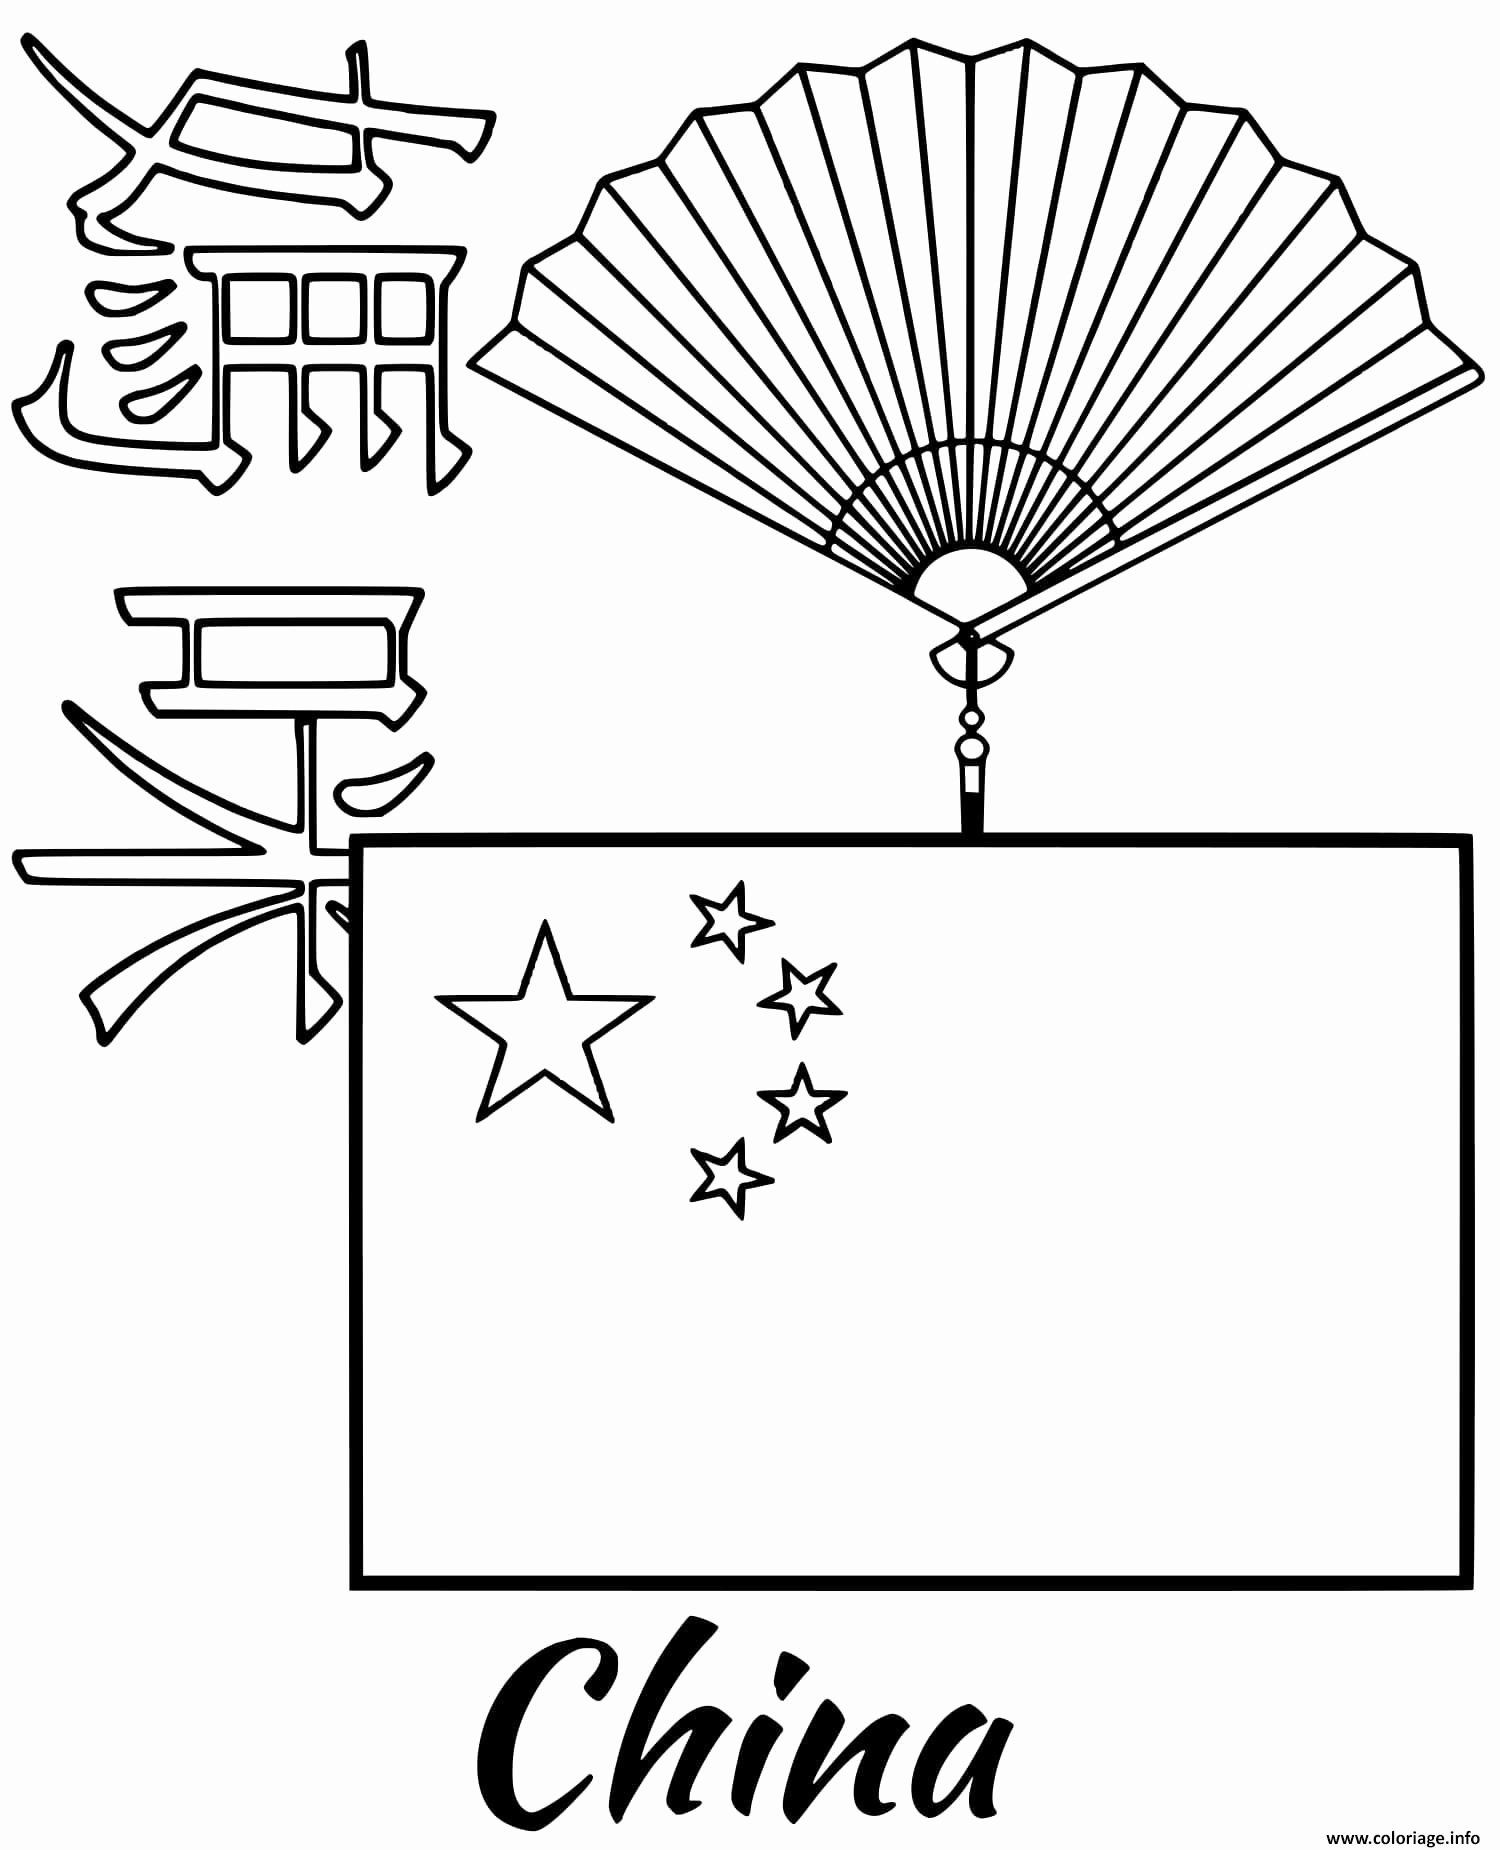 Chinese Flag Coloring Page Fresh Coloriage Chine Drapeau Letters Jecolorie Chine Drapeau Drapeau Chine Coloriage